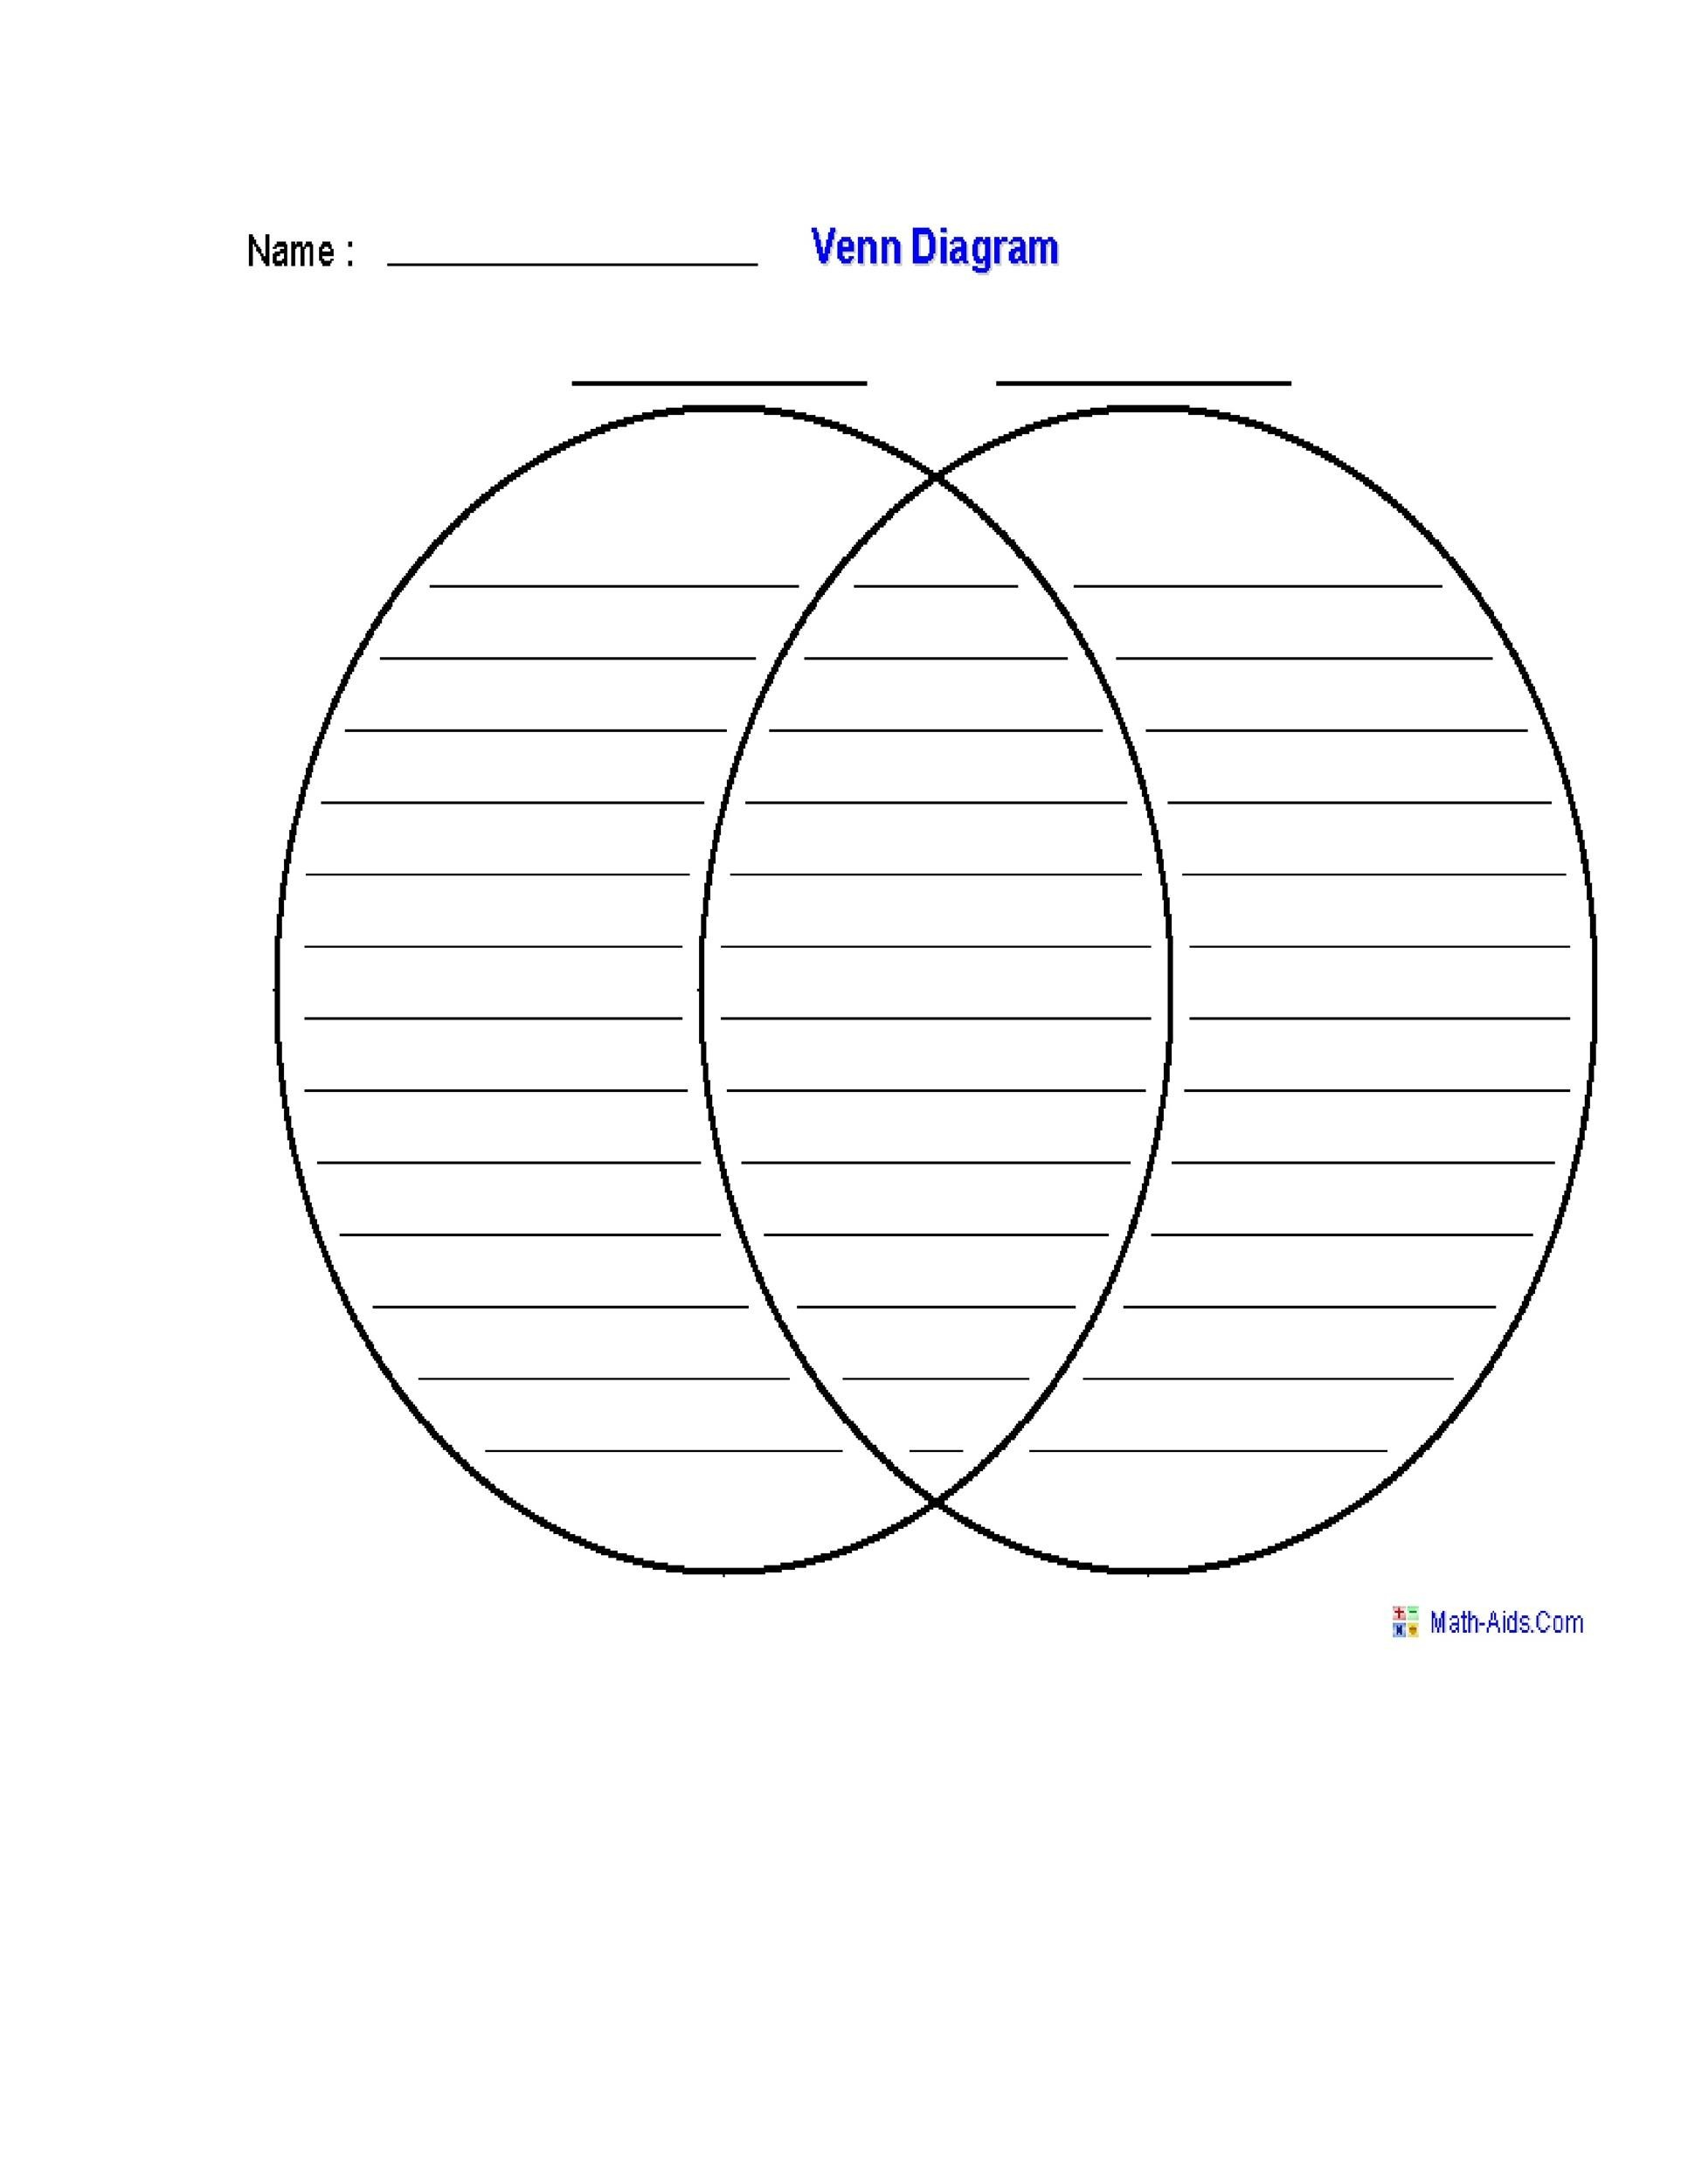 Free venn diagram template 32